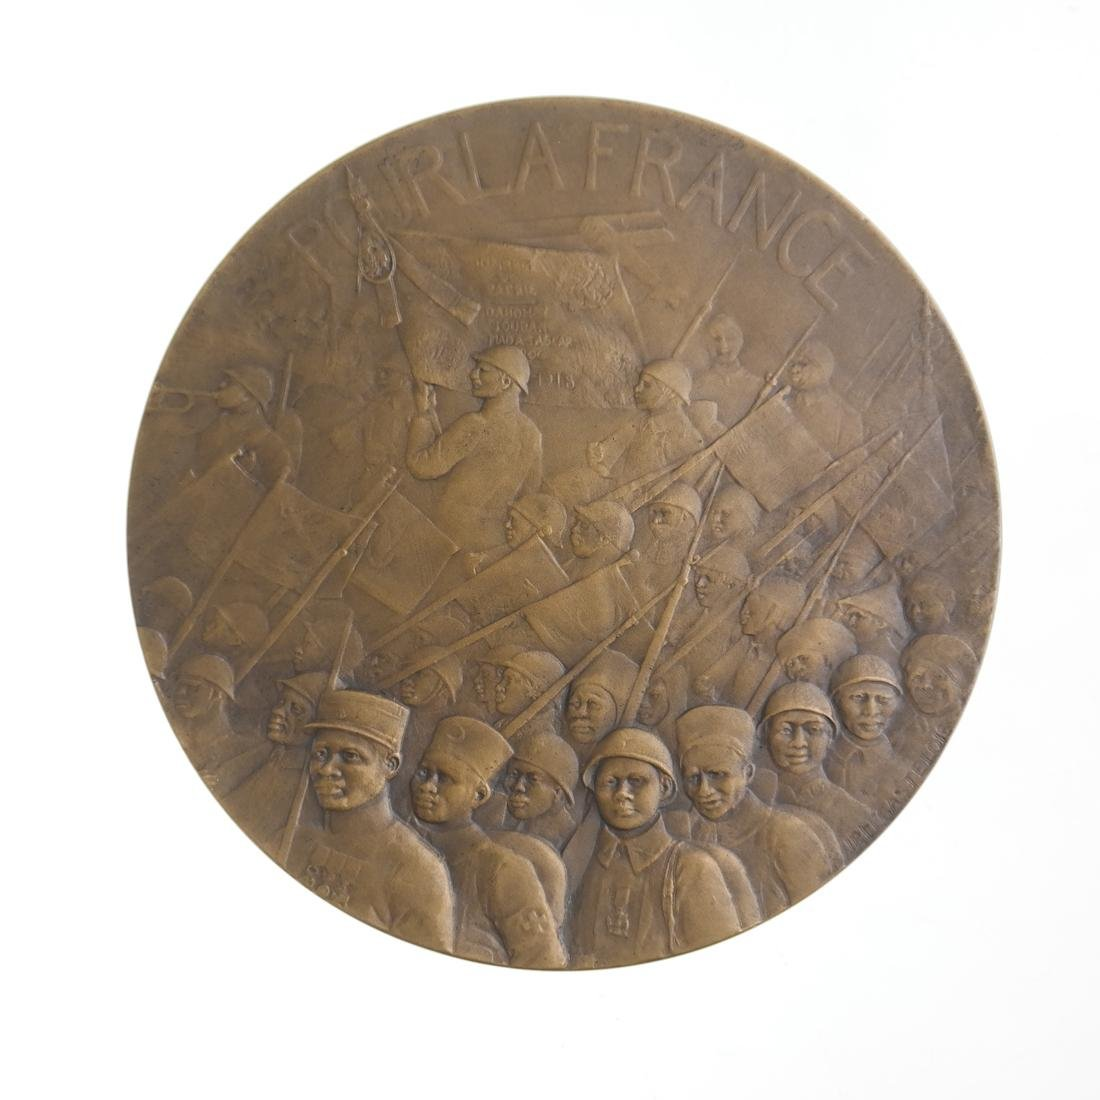 FRANCE. COLONIAL FORCES TRIBUTE MEDAL, 1918.